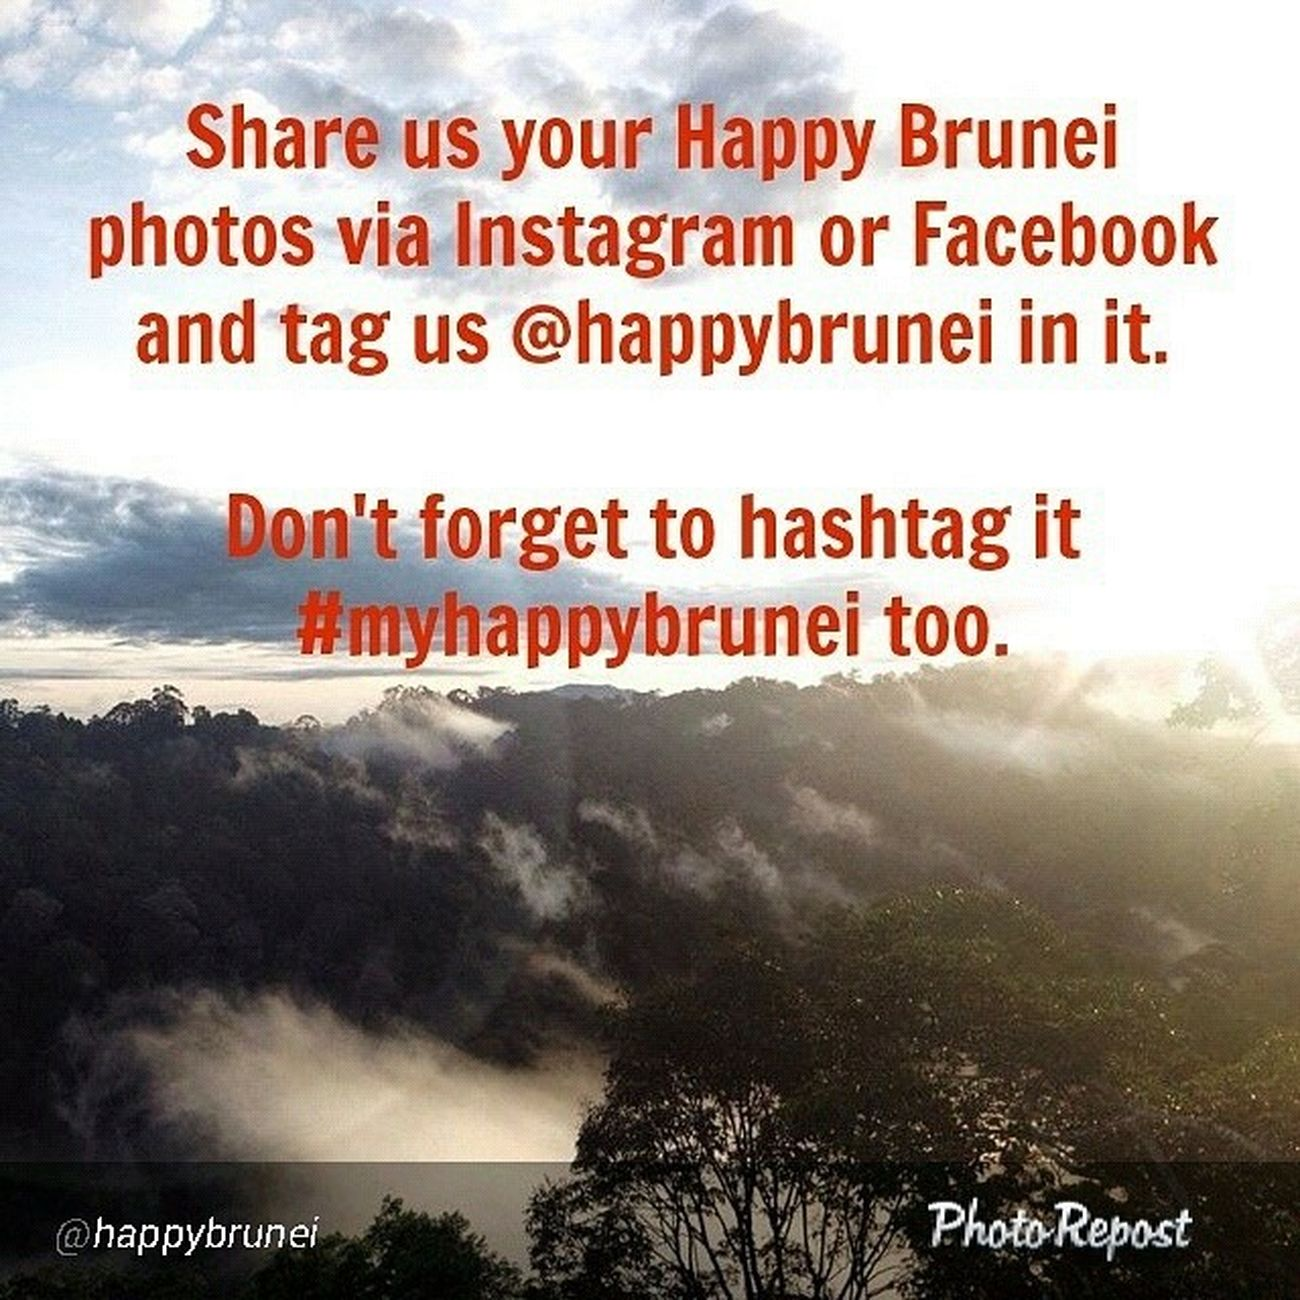 """By @happybrunei """"So what is Happy Brunei to you? Share it with us and we'll spread the love for all to see. Tag us on IG or you can Inbox us via our FB page at facebook.com/wearehappybrunei Myhappybrunei Wearehappybrunei HappyBrunei Brunei """" via @PhotoRepost_app"""